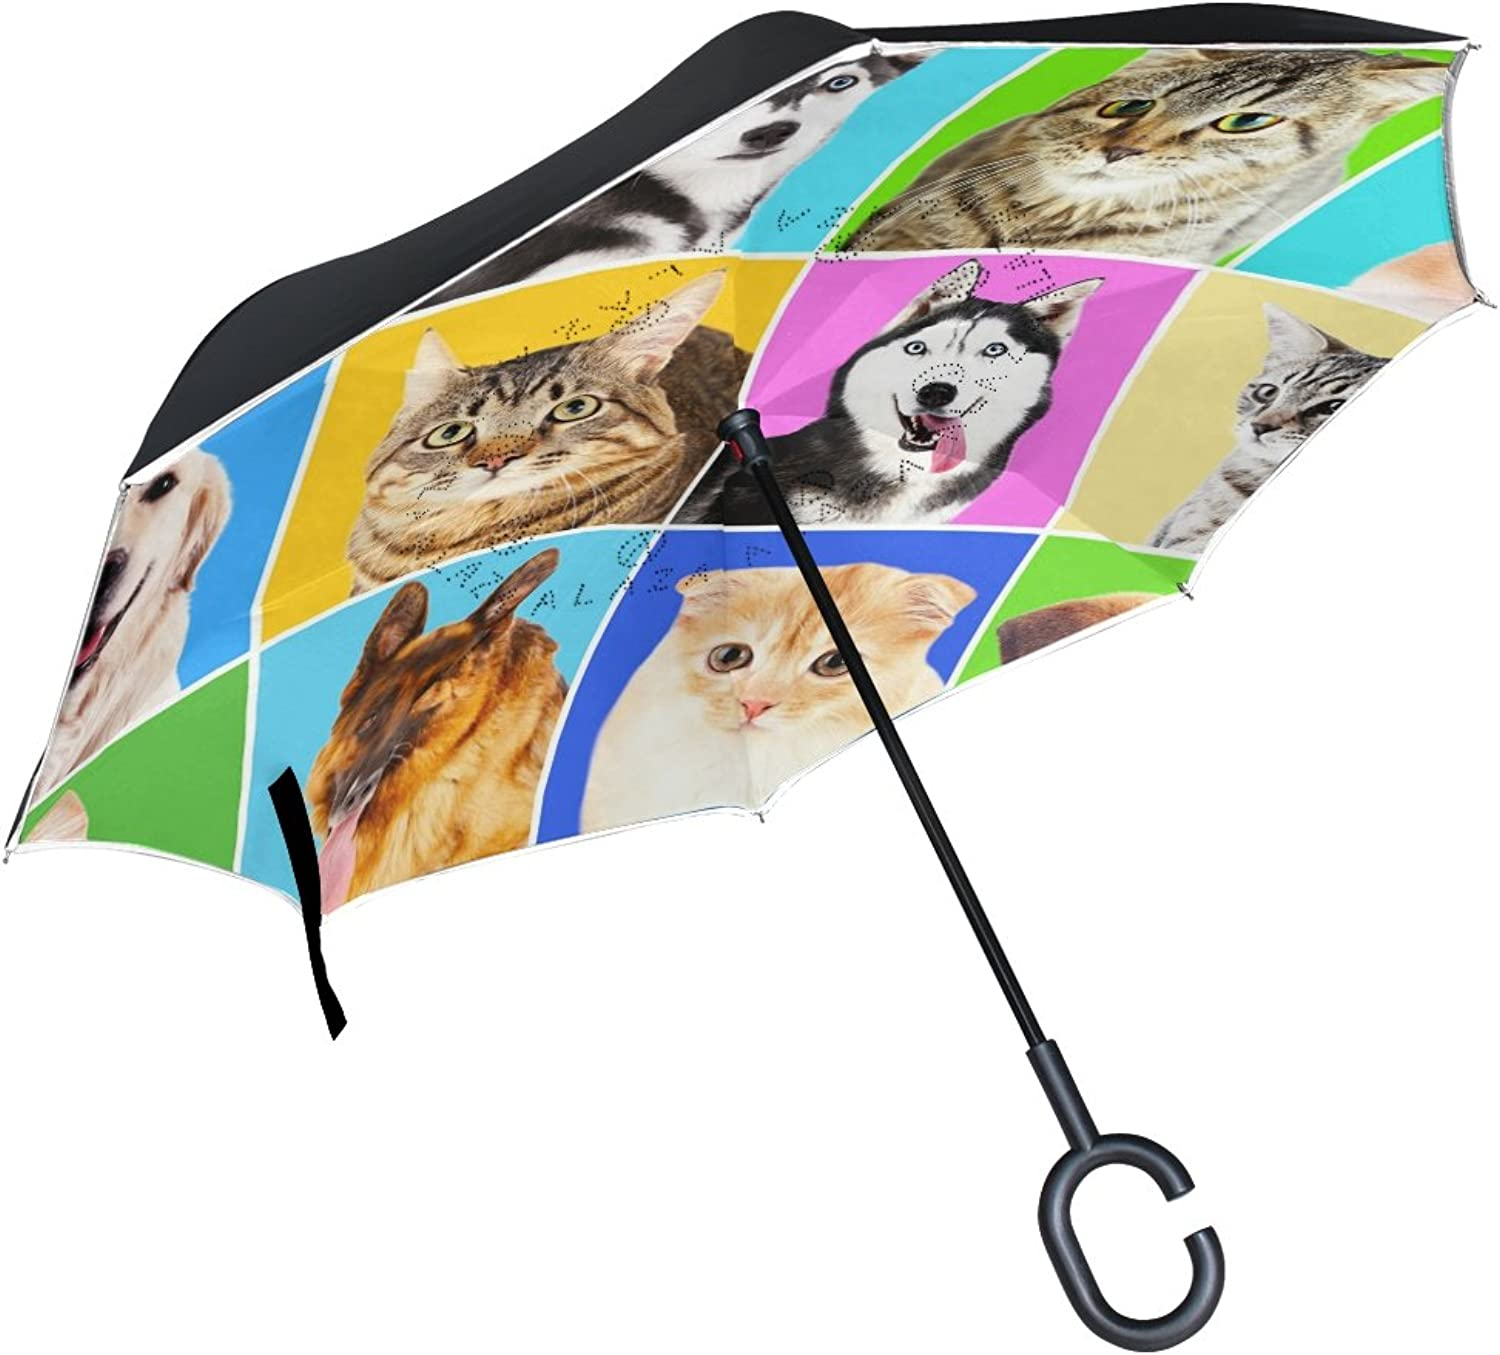 MAPOLO Dogs and Cats Portraits Pattern Ingreened Double Layer Windproof Straight Umbrellas InsideOut Folding Umbrella with CShaped Handle for Car Use